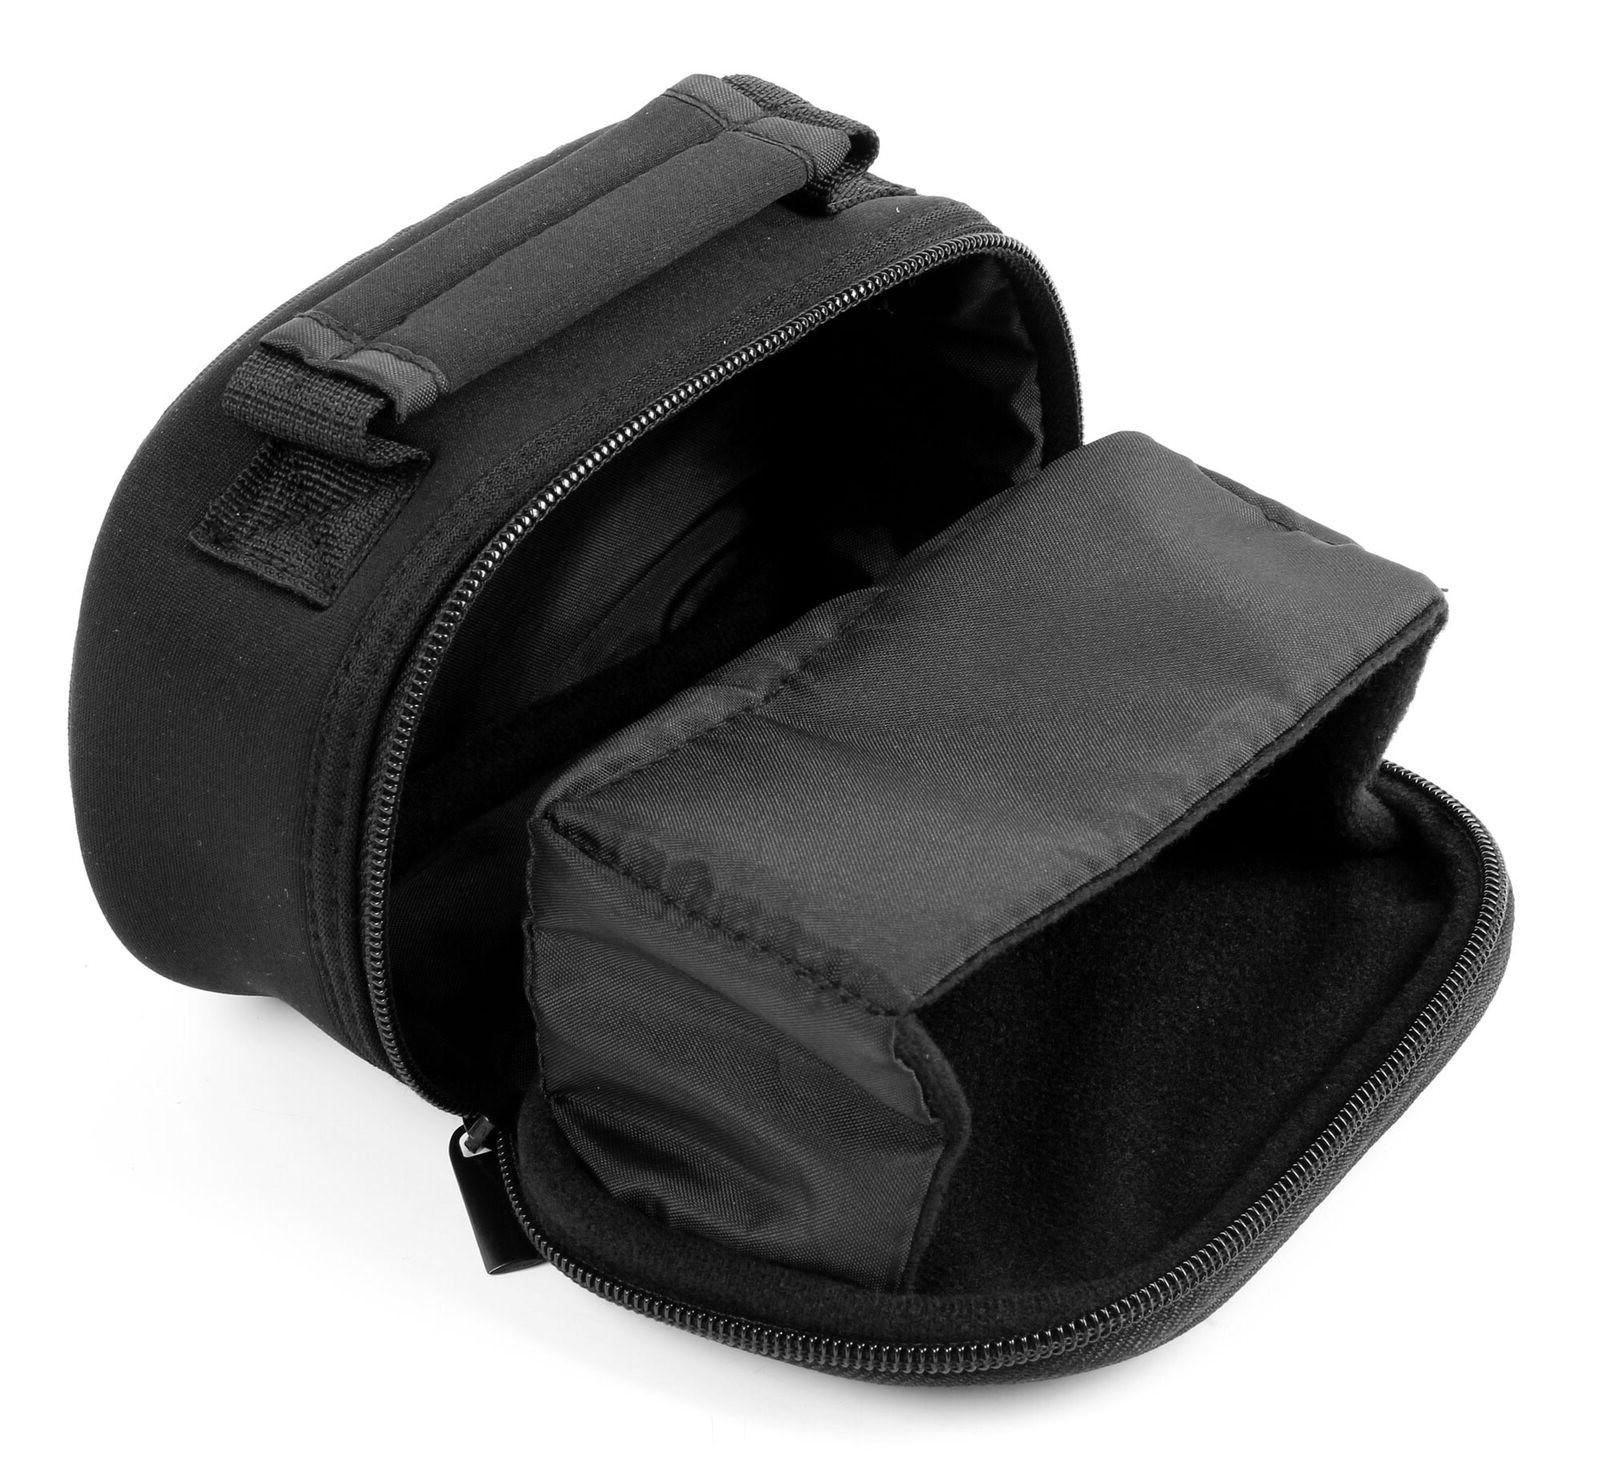 Black Lightweight Padded Case Bag For Roccat Kone XTD Gaming